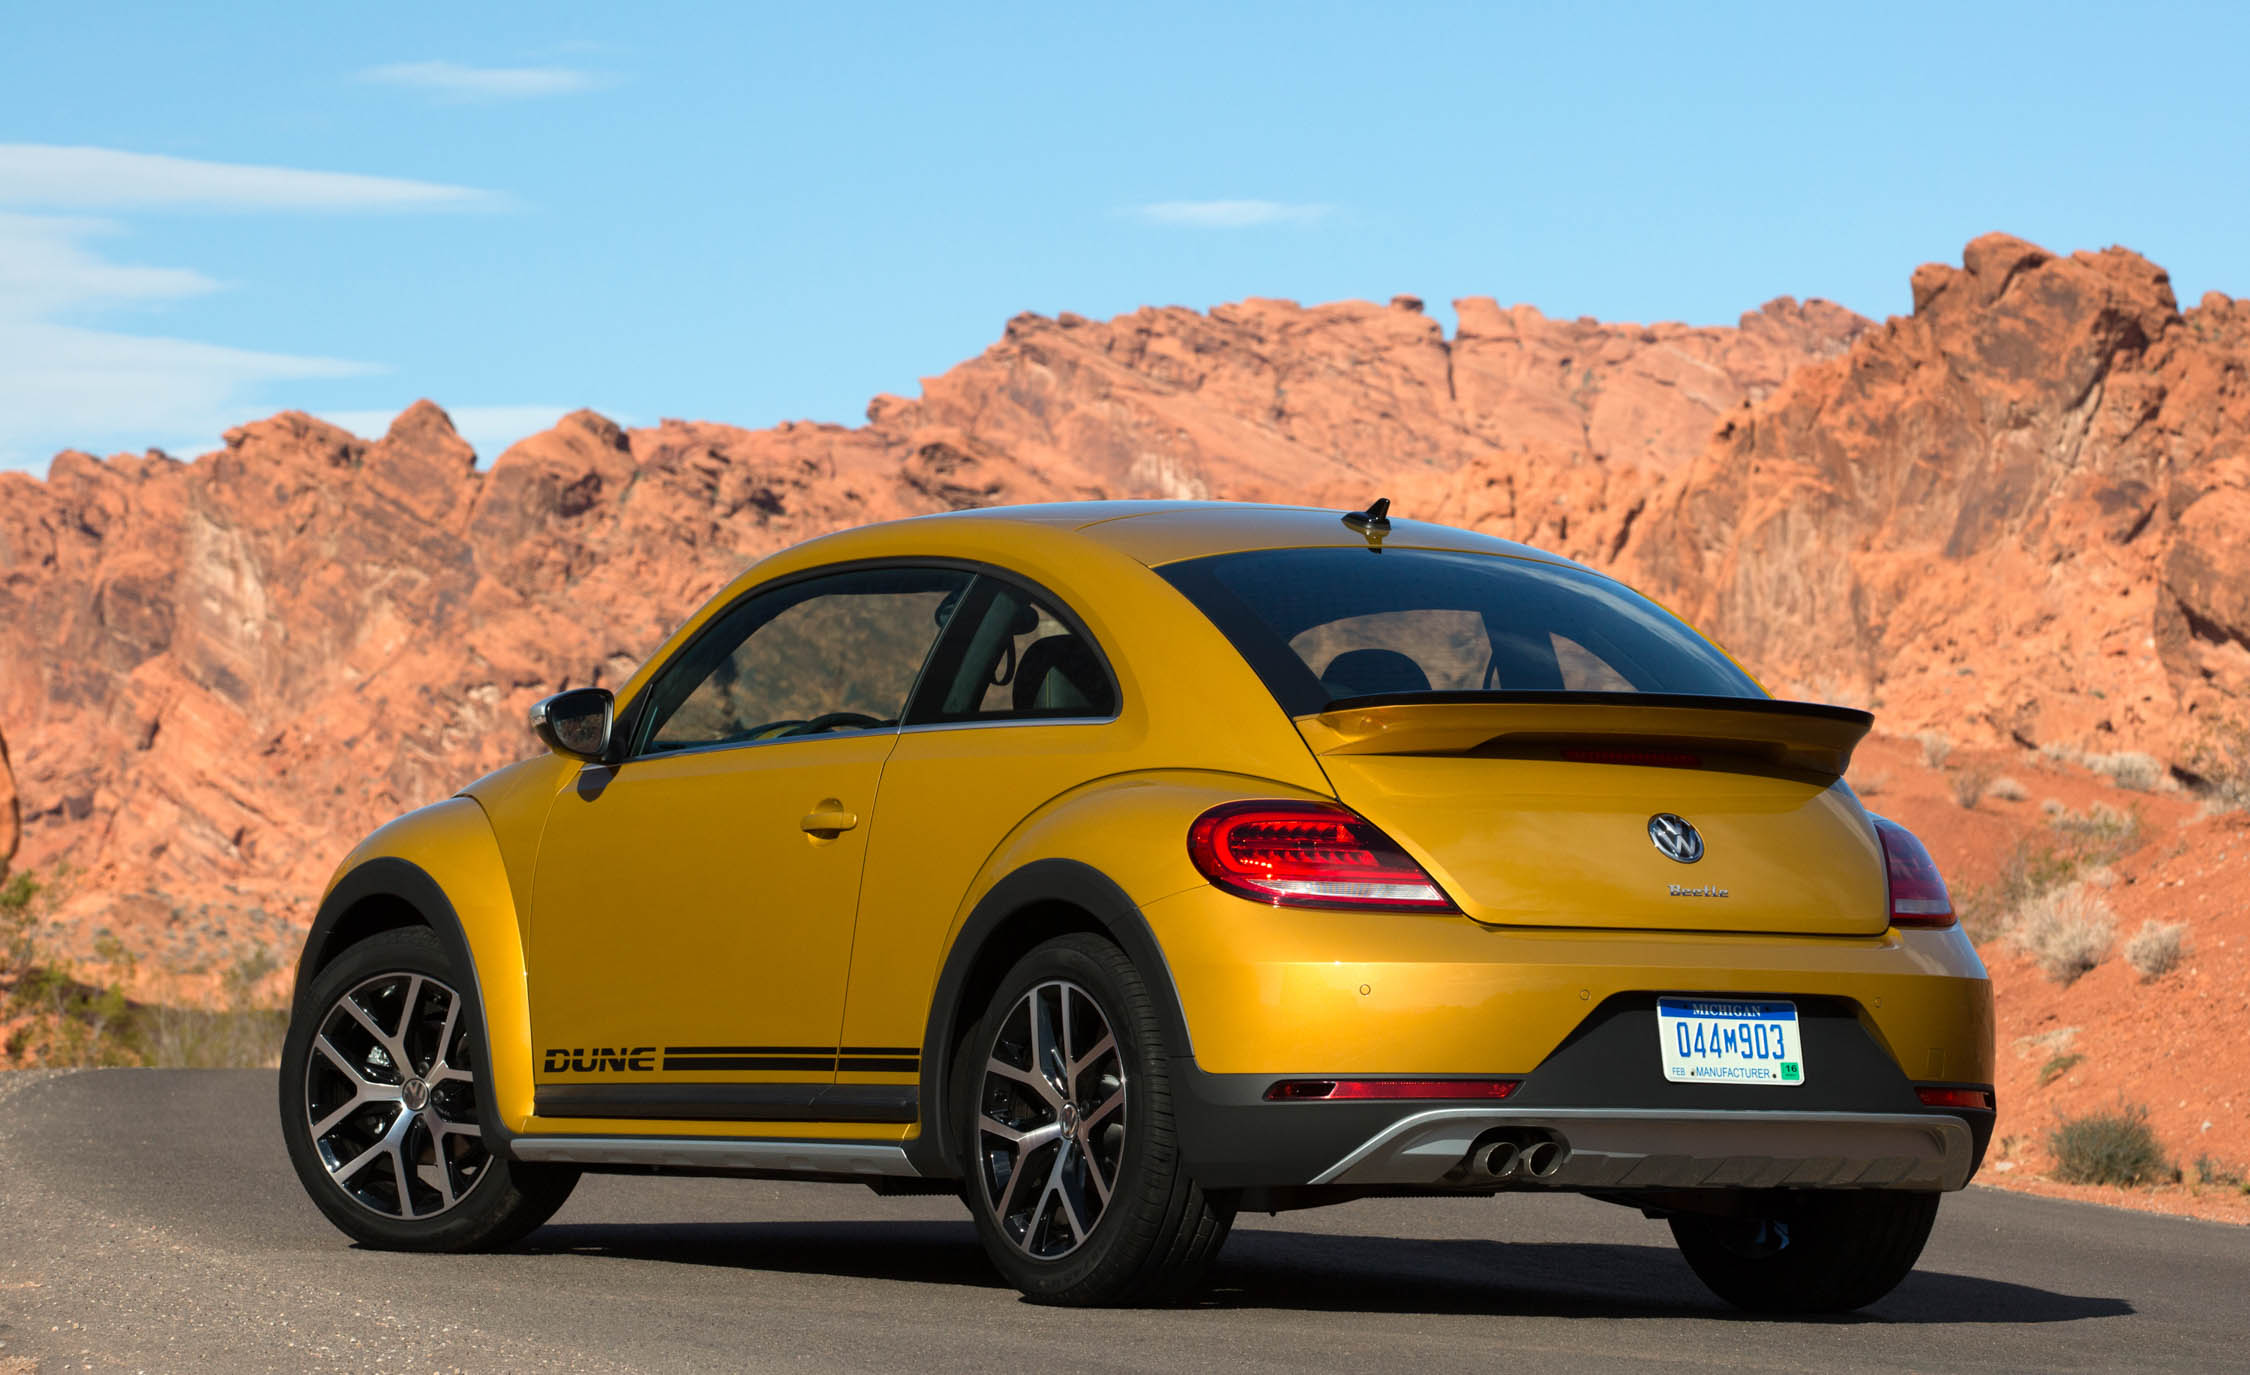 2016 Volkswagen Beetle Dune Coupe Exterior Full Rear And Side (View 26 of 32)